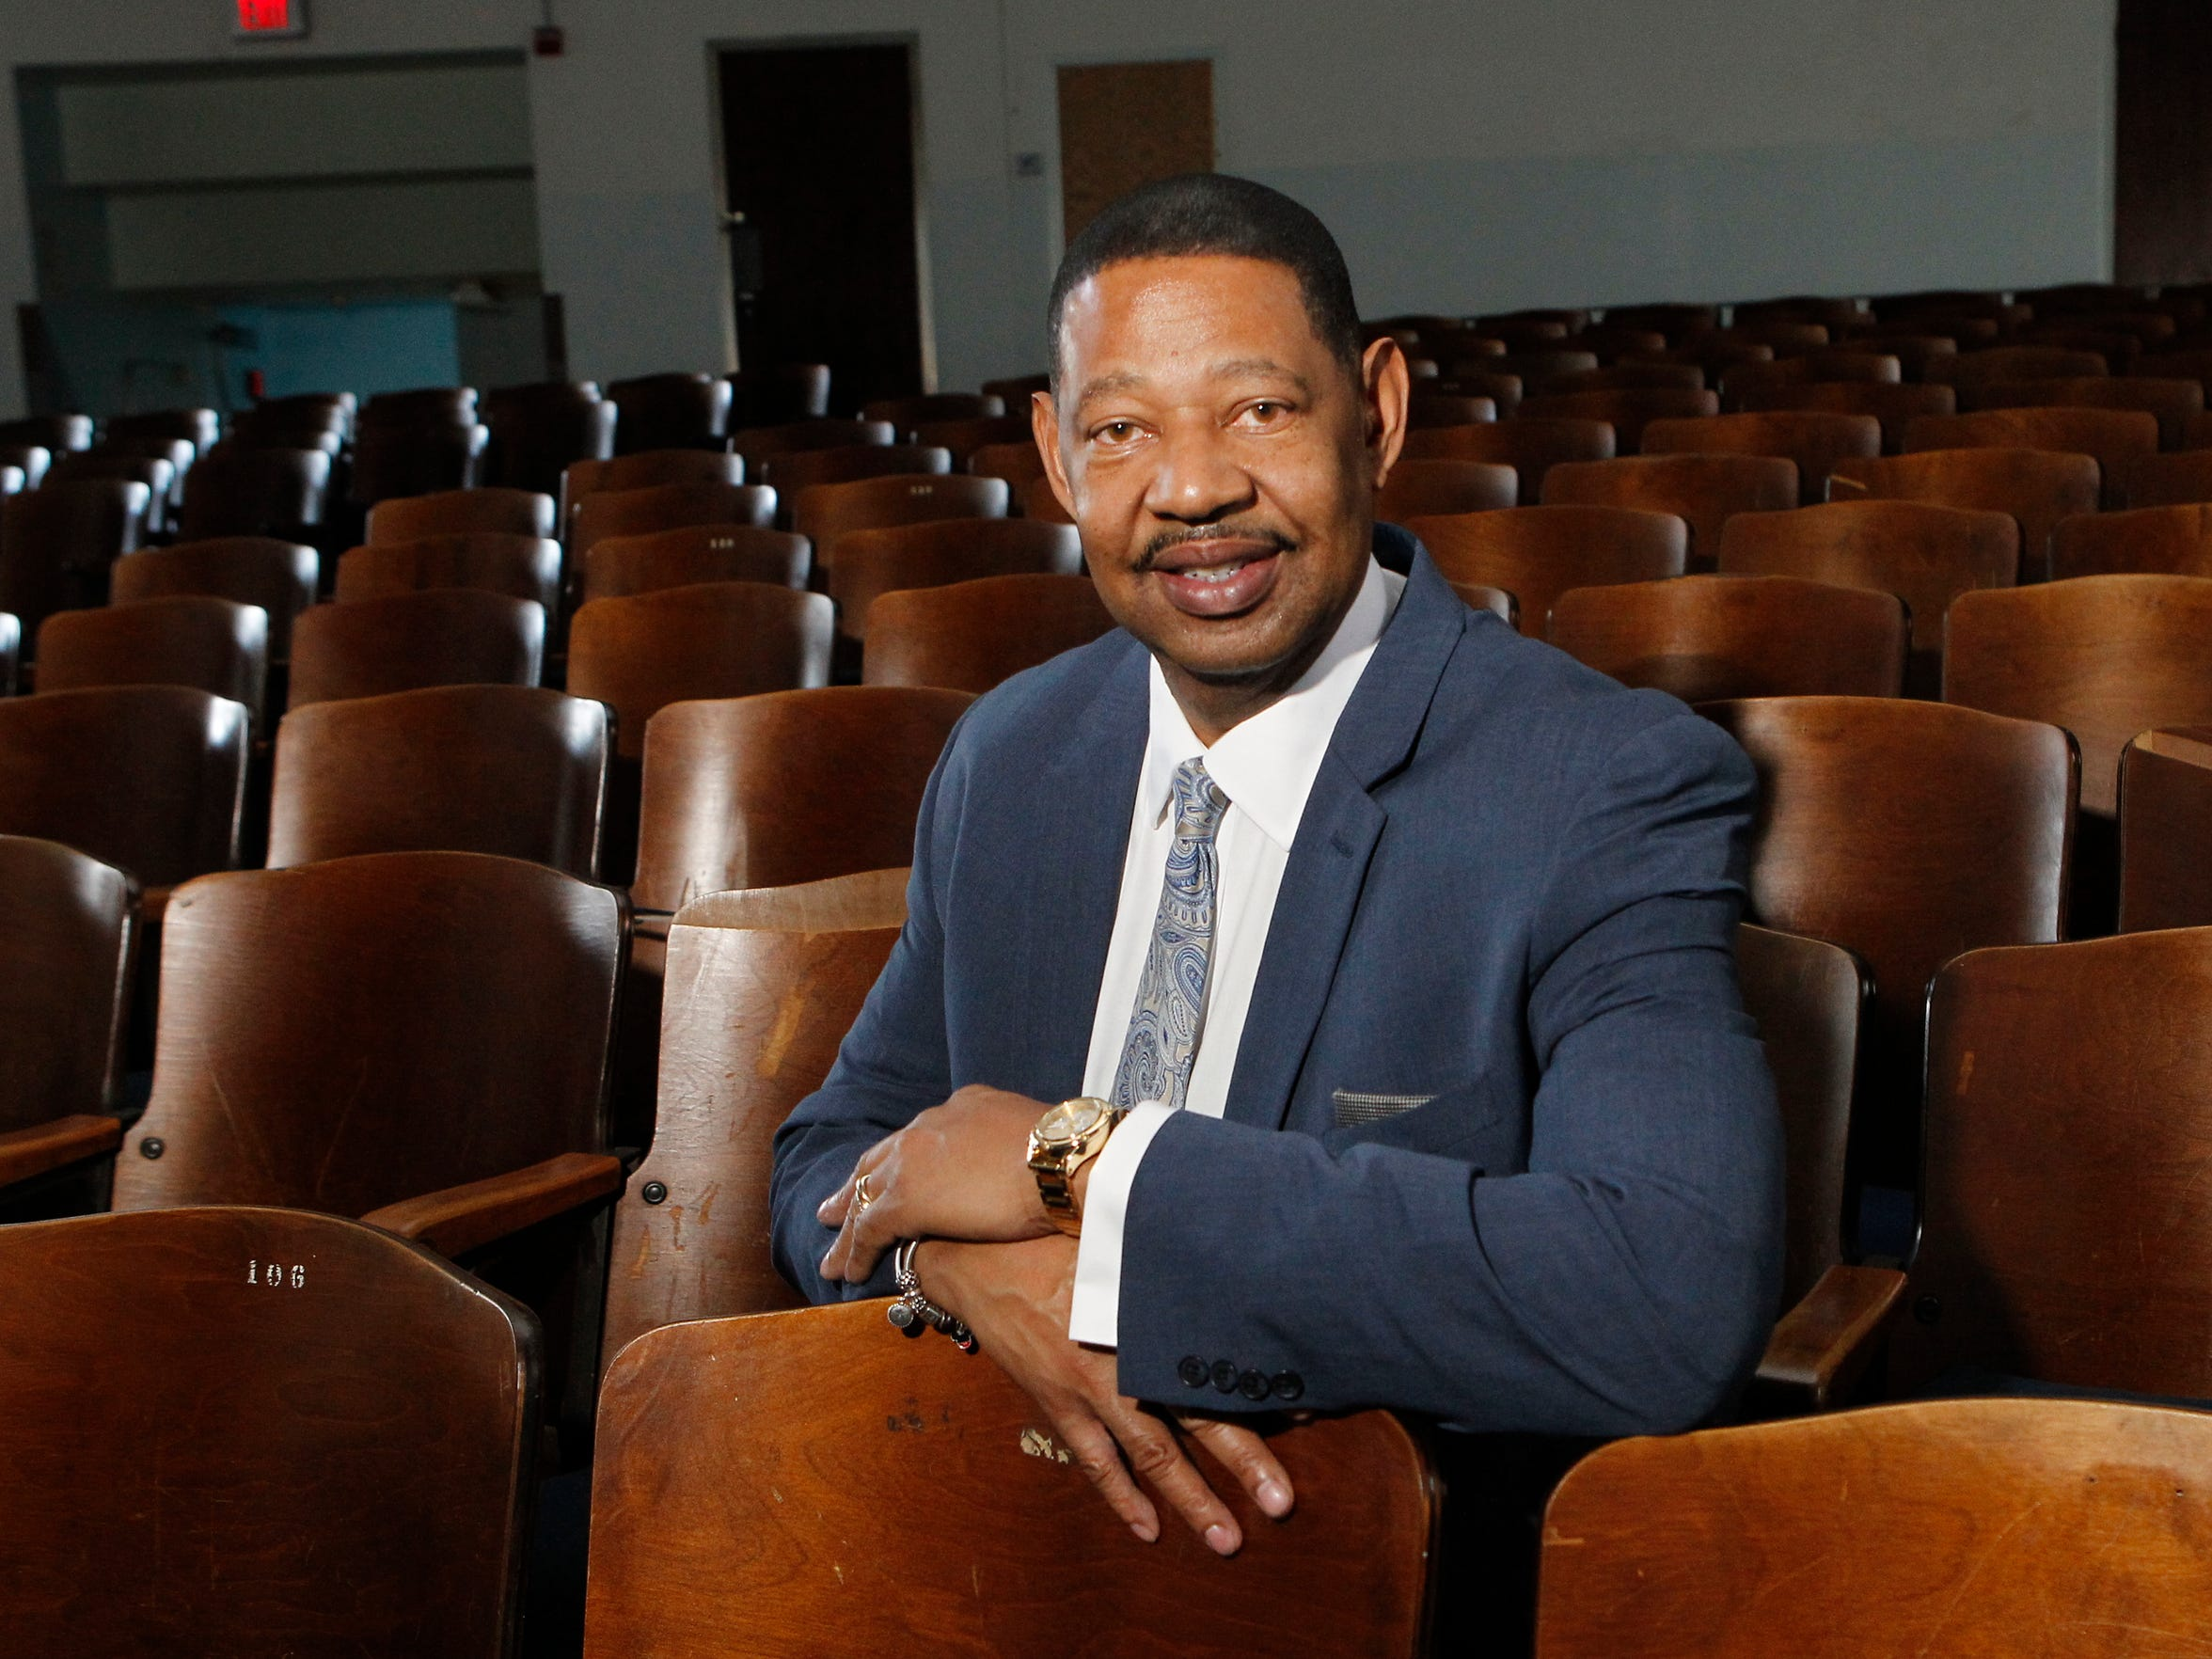 Mount Vernon School District Superintendent Kenneth R. Hamilton photographed in the auditorium of Thornton High School.